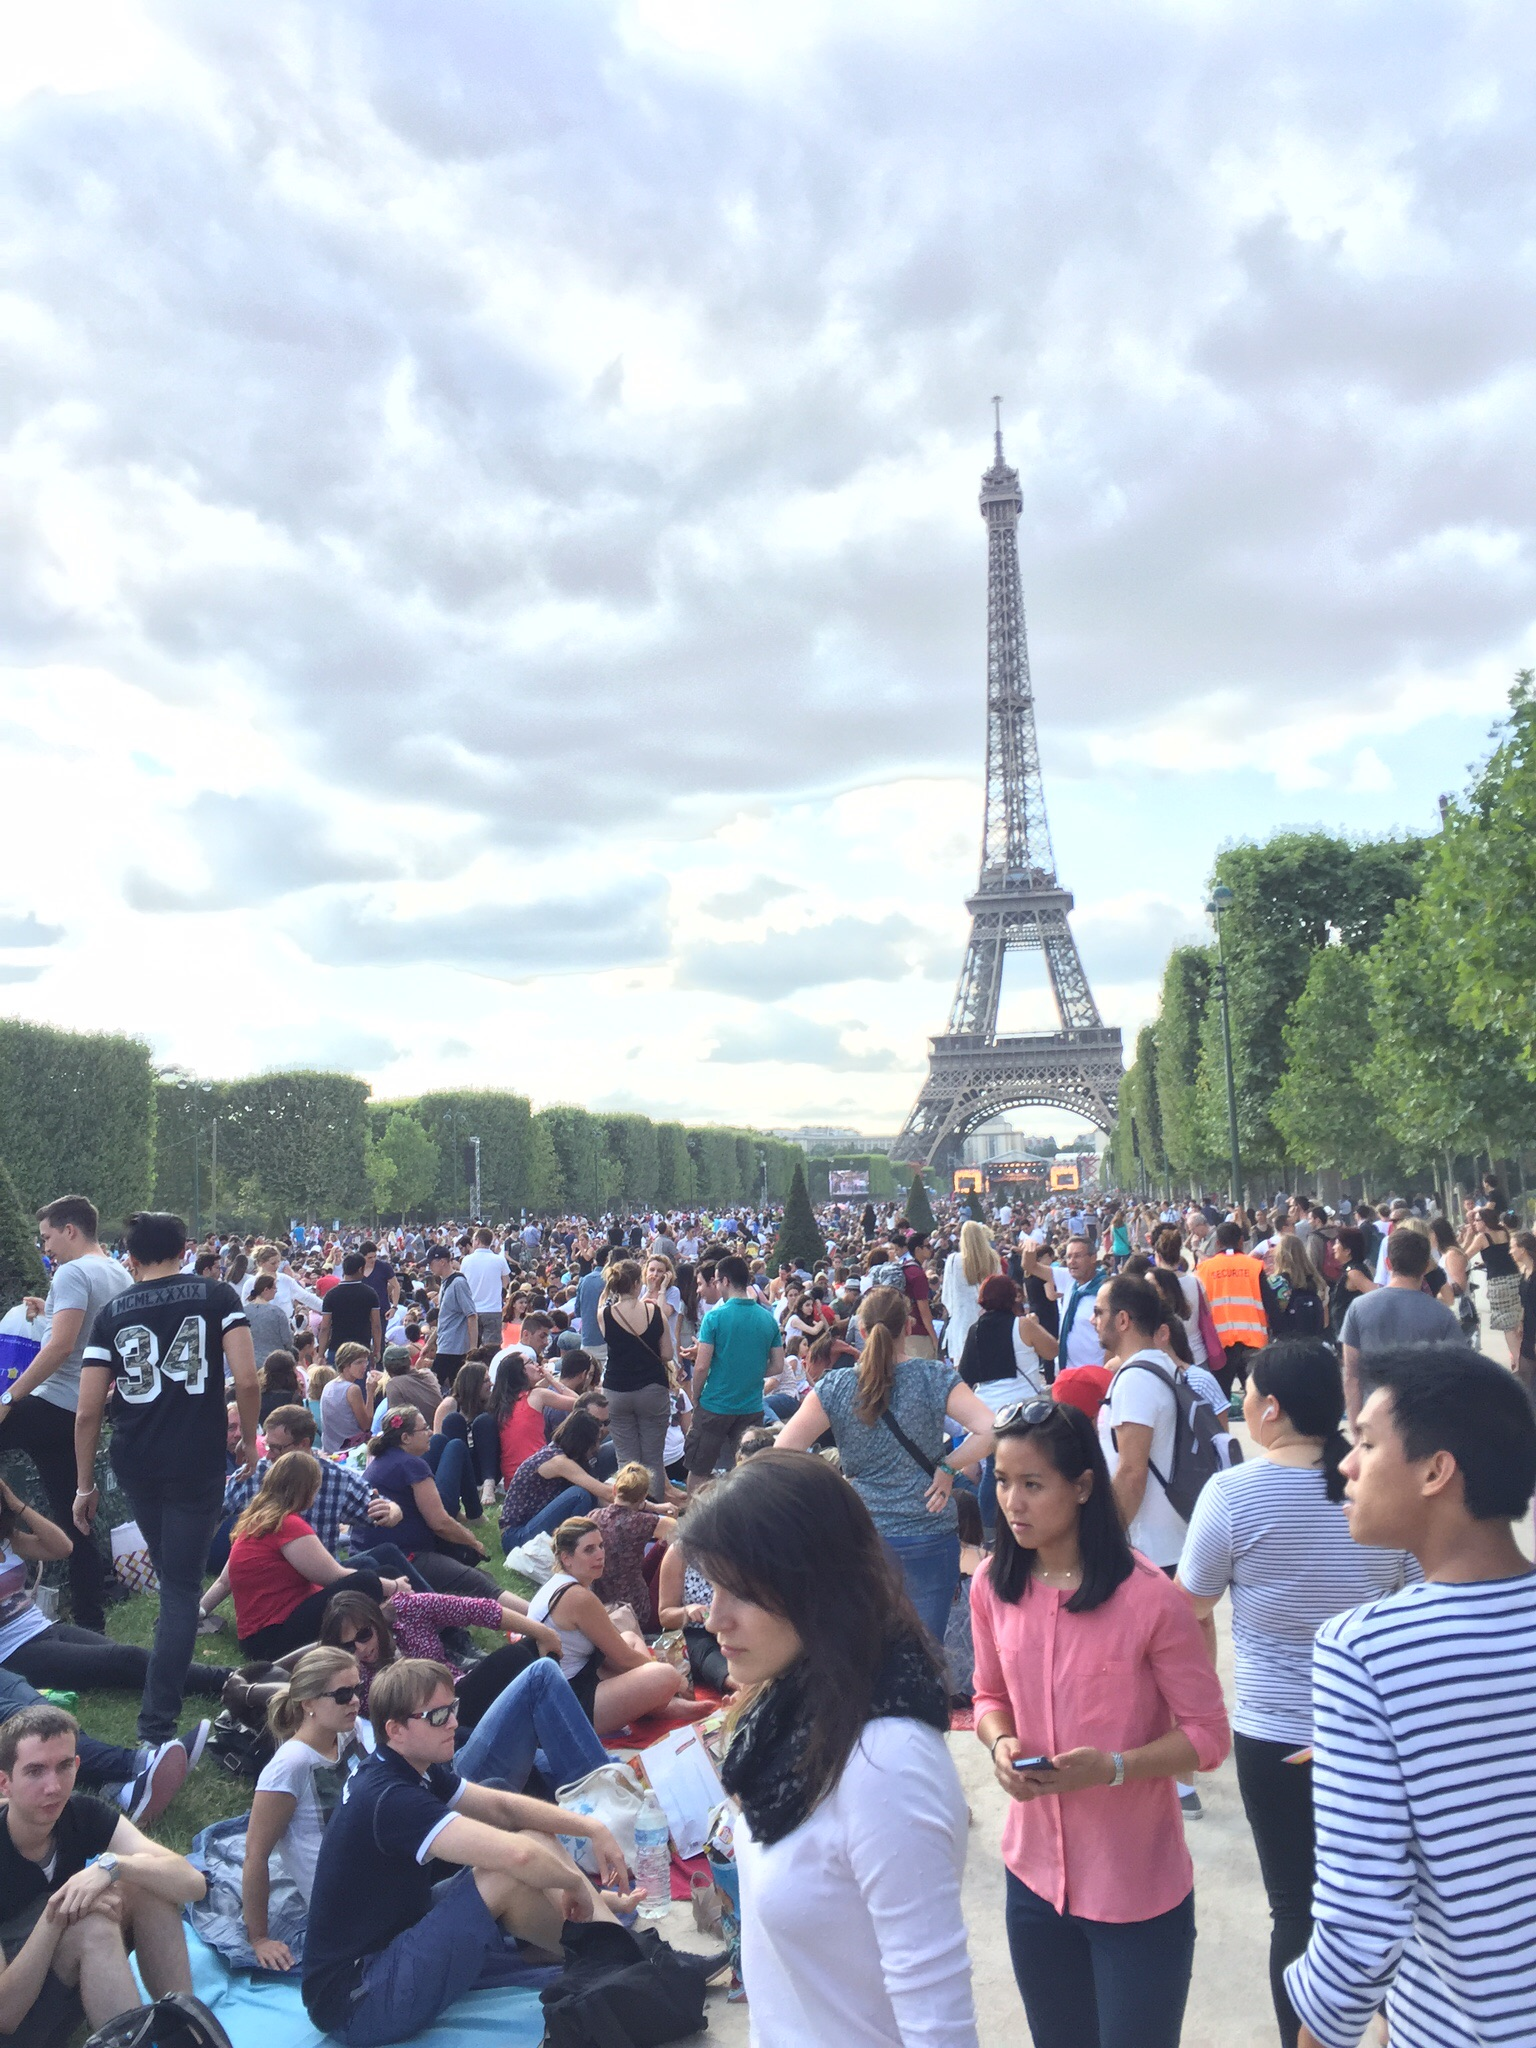 The crowd on the Champ de Mars on Bastille Day 2015. The distant concert stage is lit up under the Eiffel Tower.